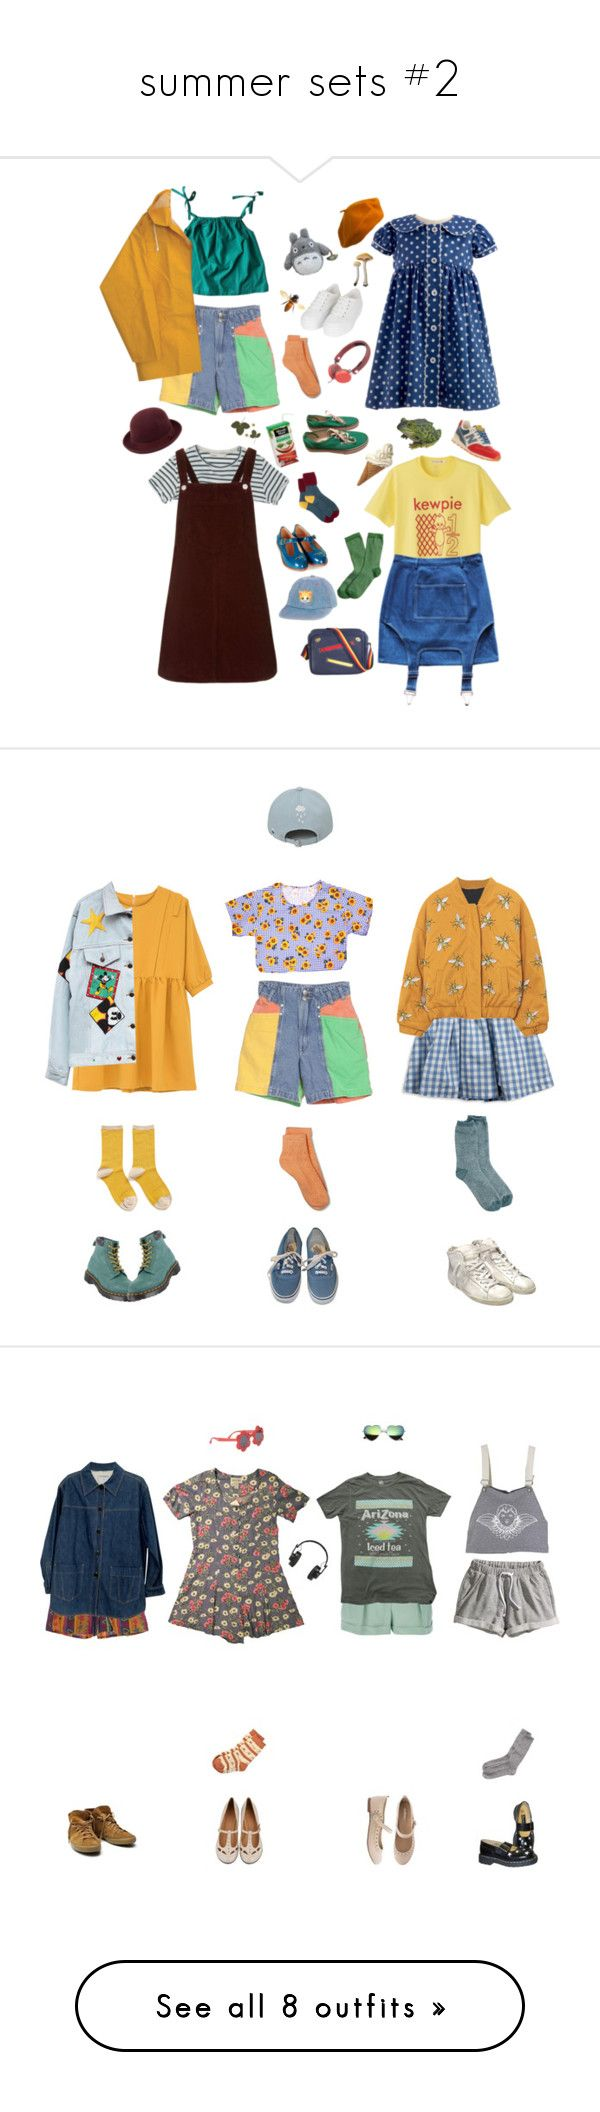 """summer sets #2"" by floxpolimon ❤ liked on Polyvore featuring Merona, A.P.C., Topshop, Marc by Marc Jacobs, Vans, Brooks Brothers, Burberry, Mulberry, New Balance and Margarin Fingers"